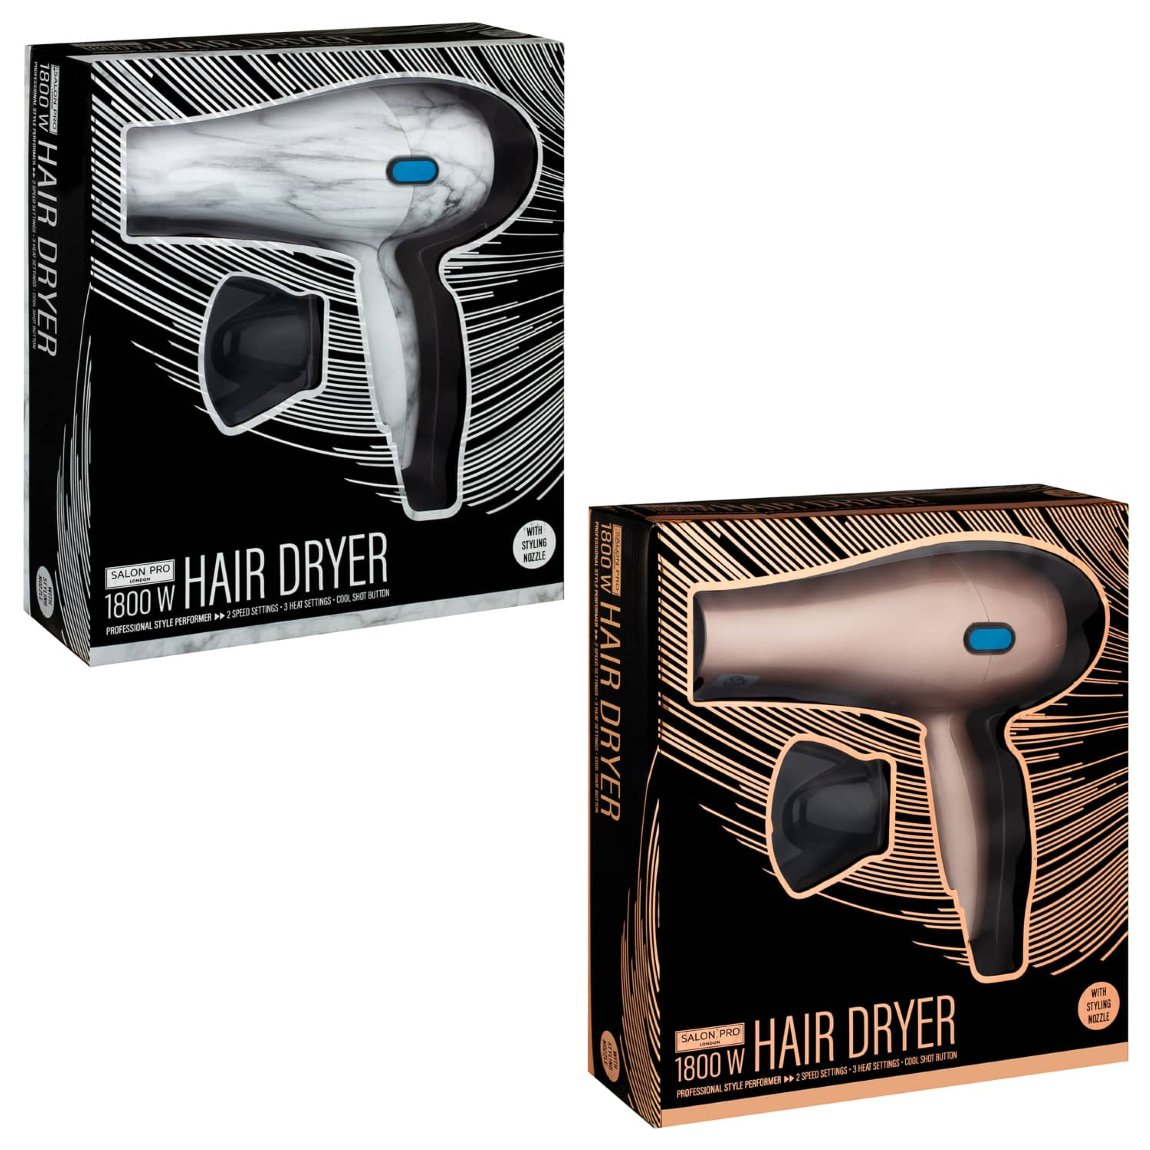 Salon Pro Large Hairdryer 1800W - Marble